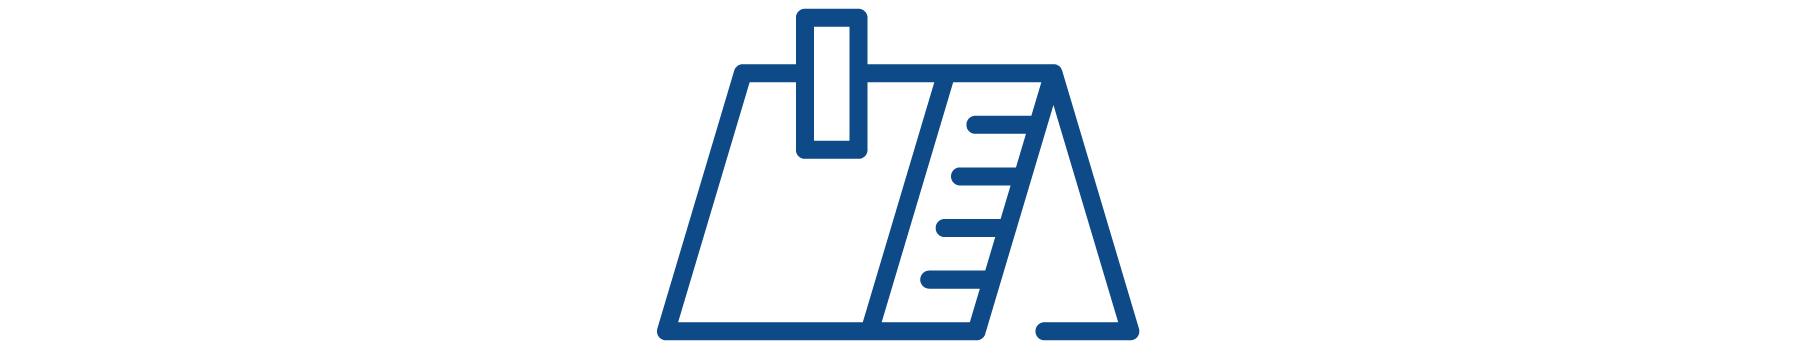 roof icon-01.png